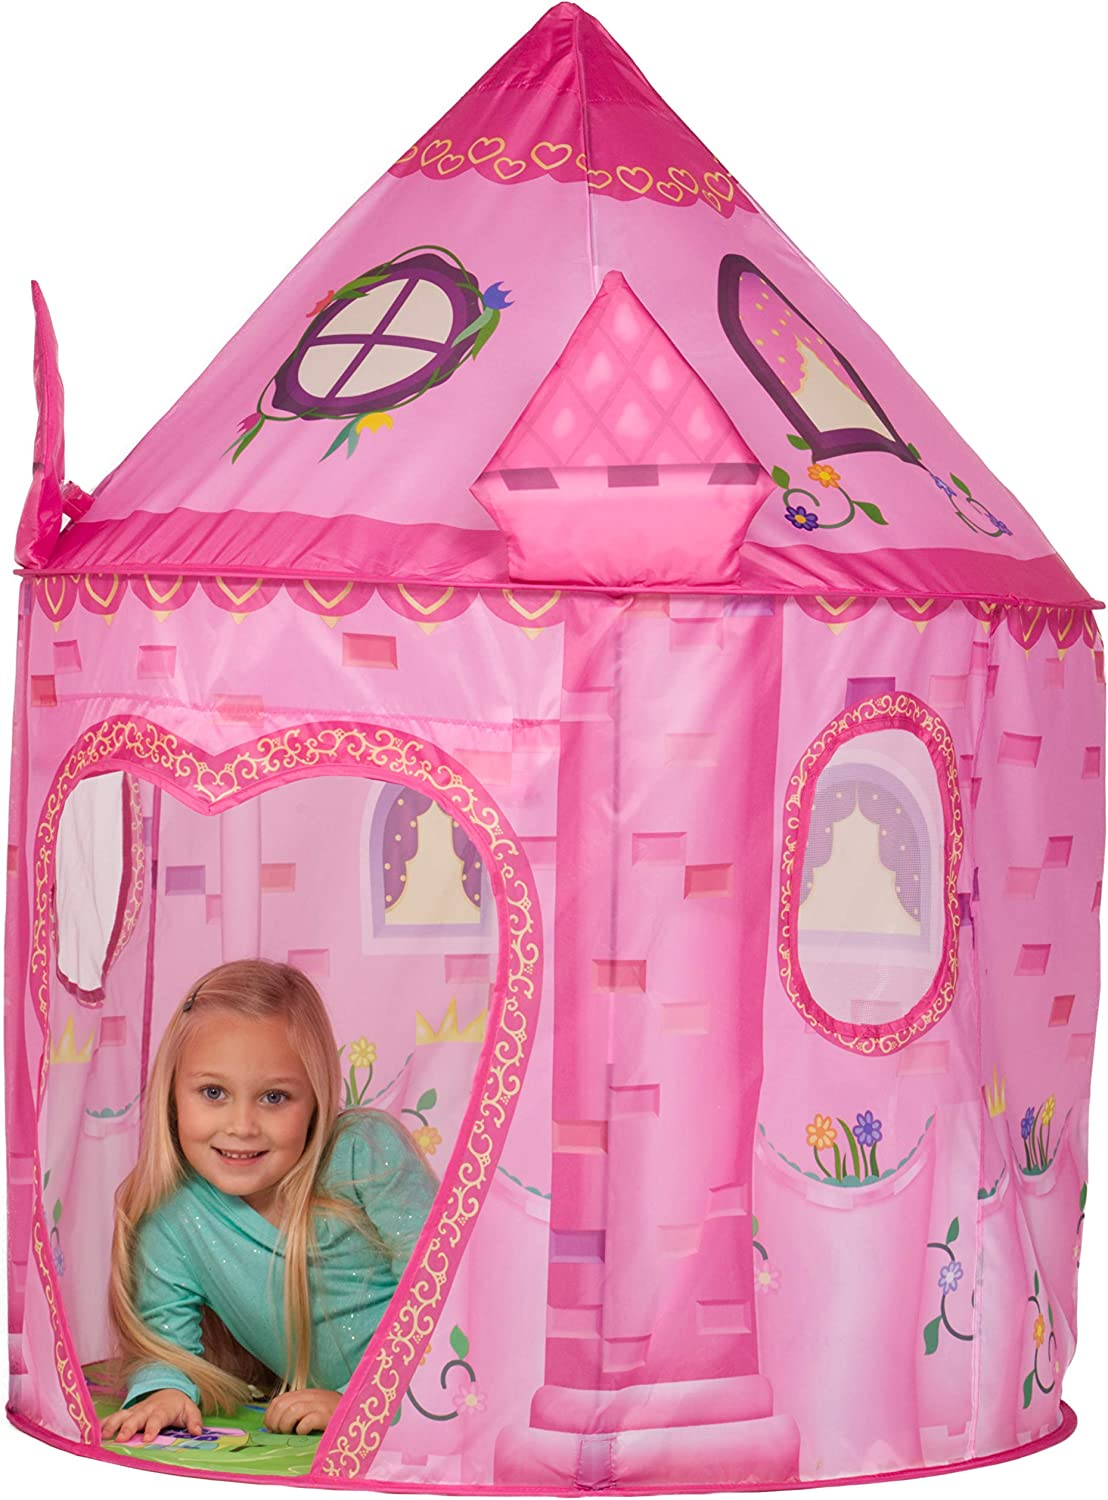 Blue Girls Princess Play Tent Toy Foldable Pop up Kids Playhouse for Children Toddlers Indoor /& Outdoor Games JHSH Kids Play Tent